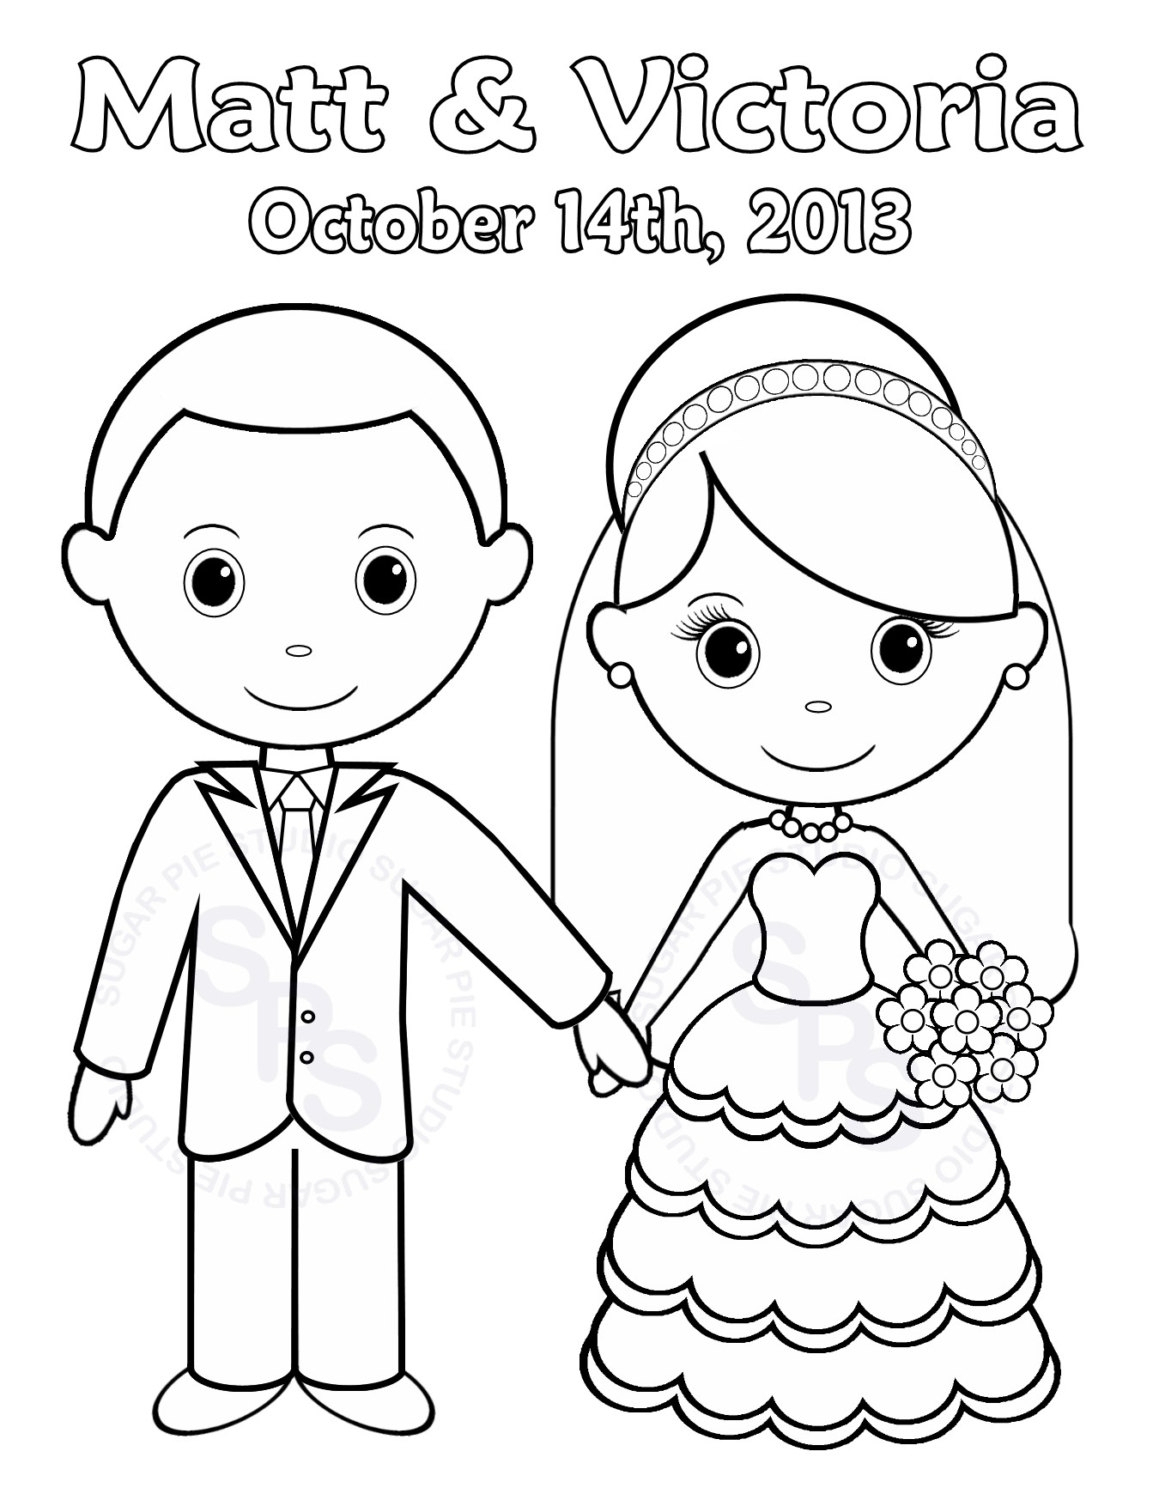 Coloring Pages : Zoloftonline Buy Info Coloring Page Weddingok Pages - Free Printable Personalized Wedding Coloring Book